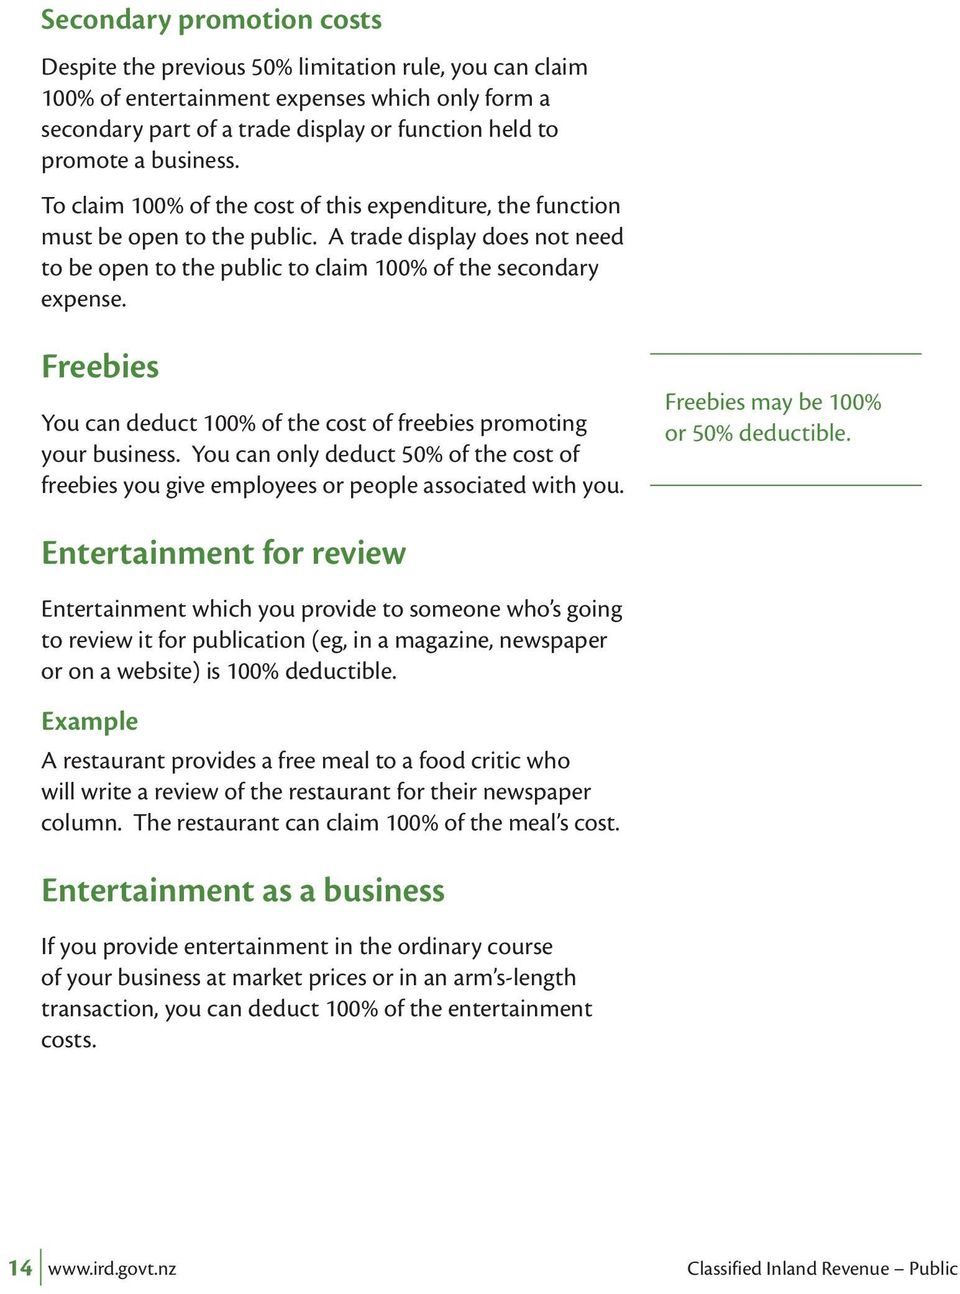 Freebies You can deduct 100% of the cost of freebies promoting your business. You can only deduct 50% of the cost of freebies you give employees or people associated with you.